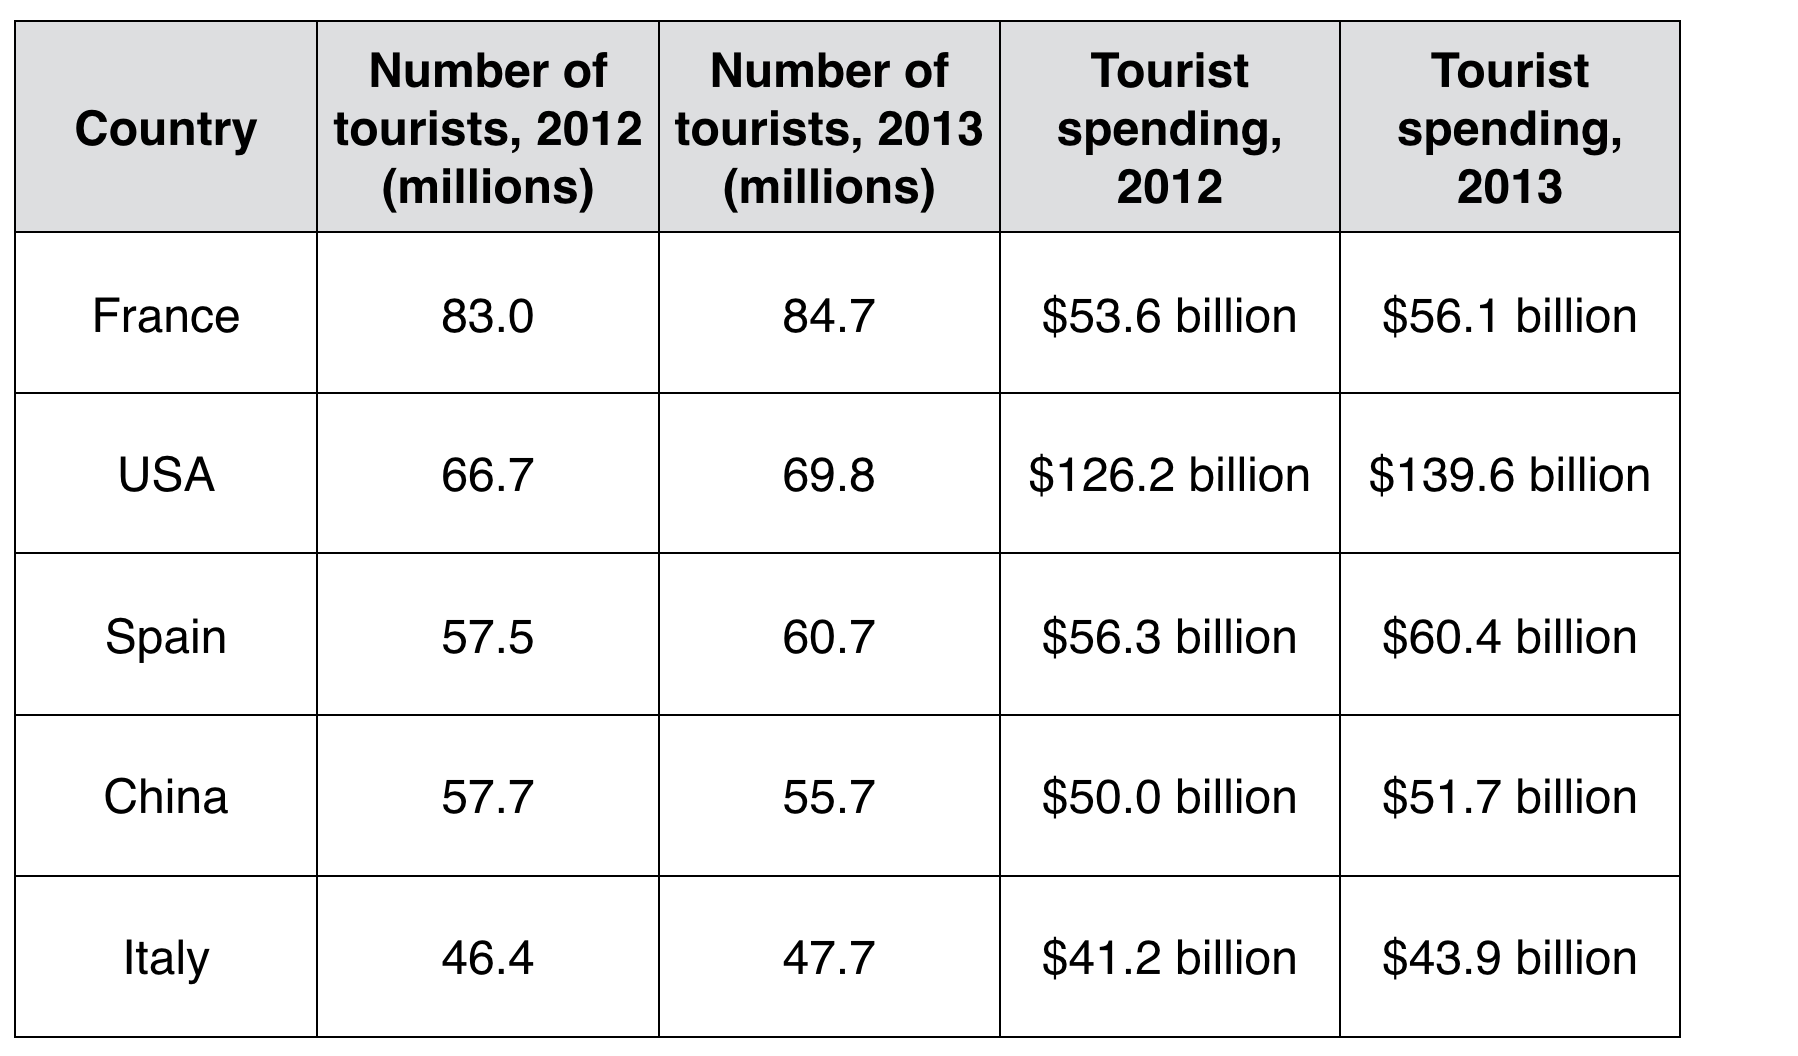 The table shows the tourist numbers and tourist spending in five